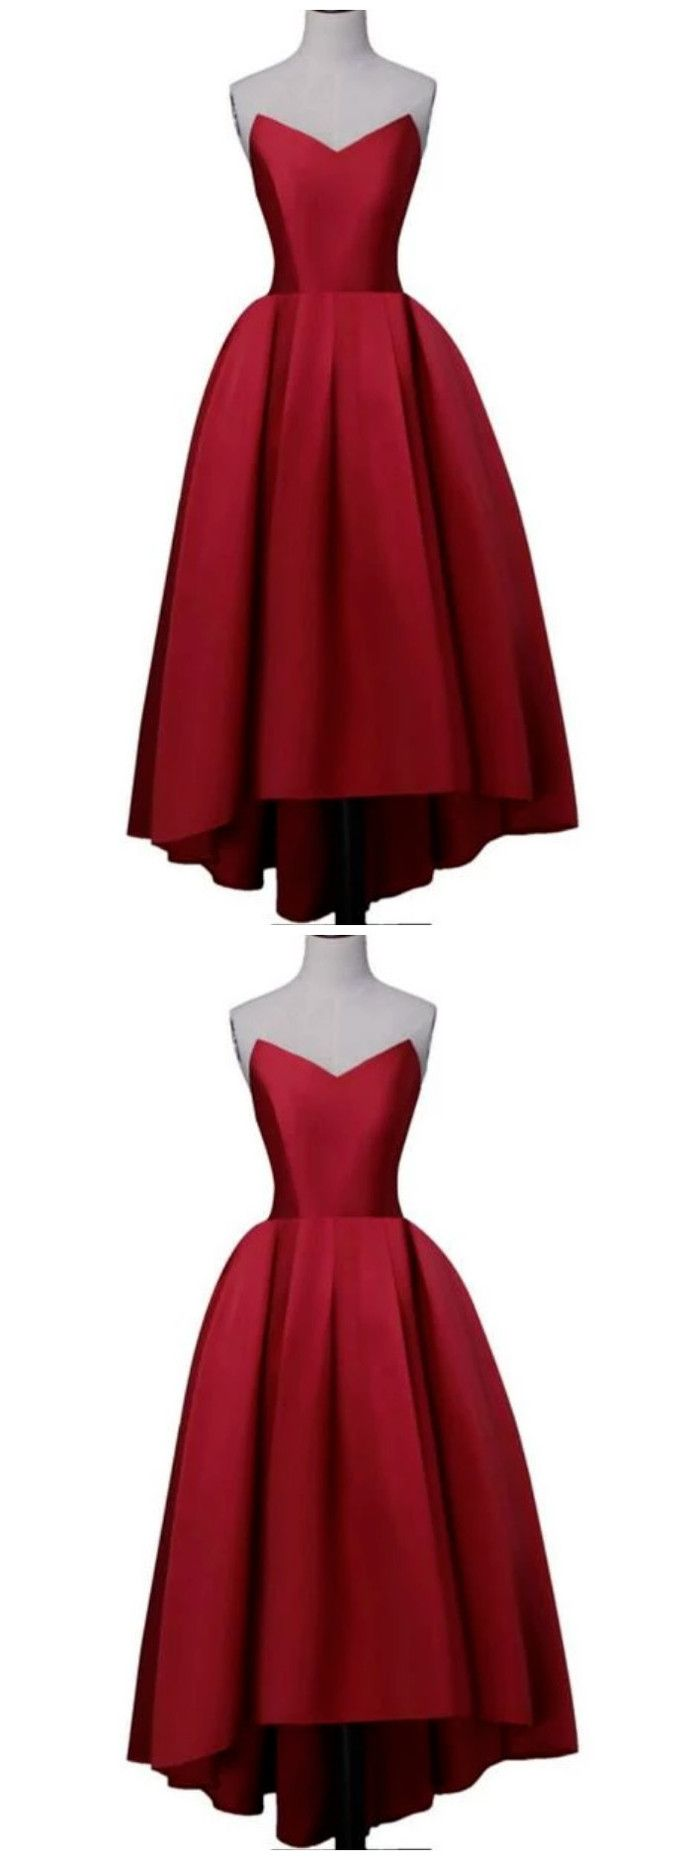 Wine Red Satin High Low Homecoming Dresses Lace Up Back Sweetheart Neck Prom Dress Homecoming Dresses Red Satin Prom Dresses [ 1860 x 690 Pixel ]